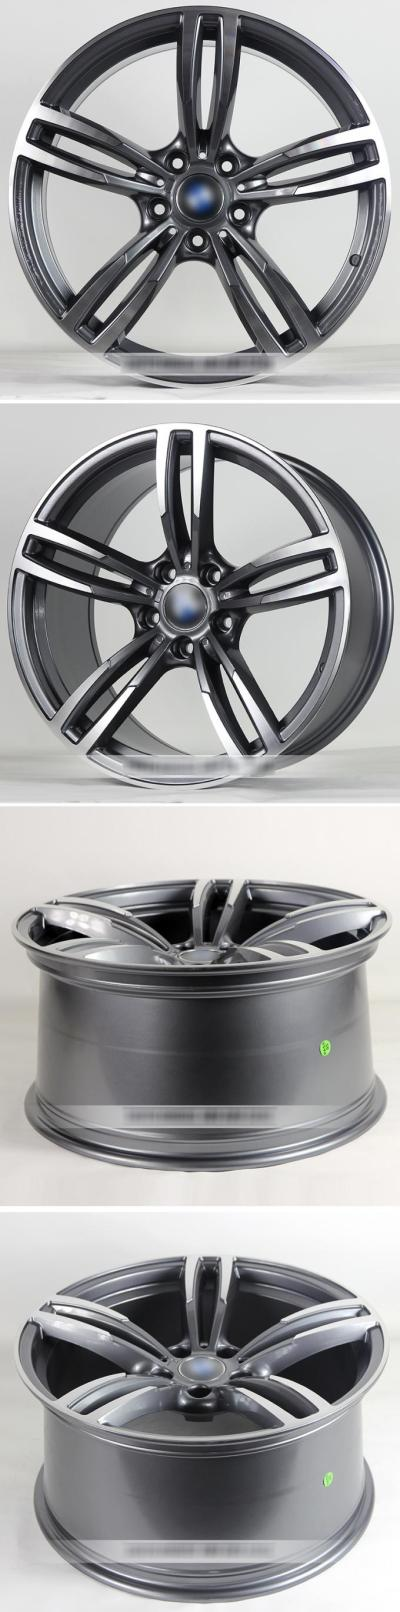 BCZ12 Casting Wheels/Staggered Wheels/Luxury Rims